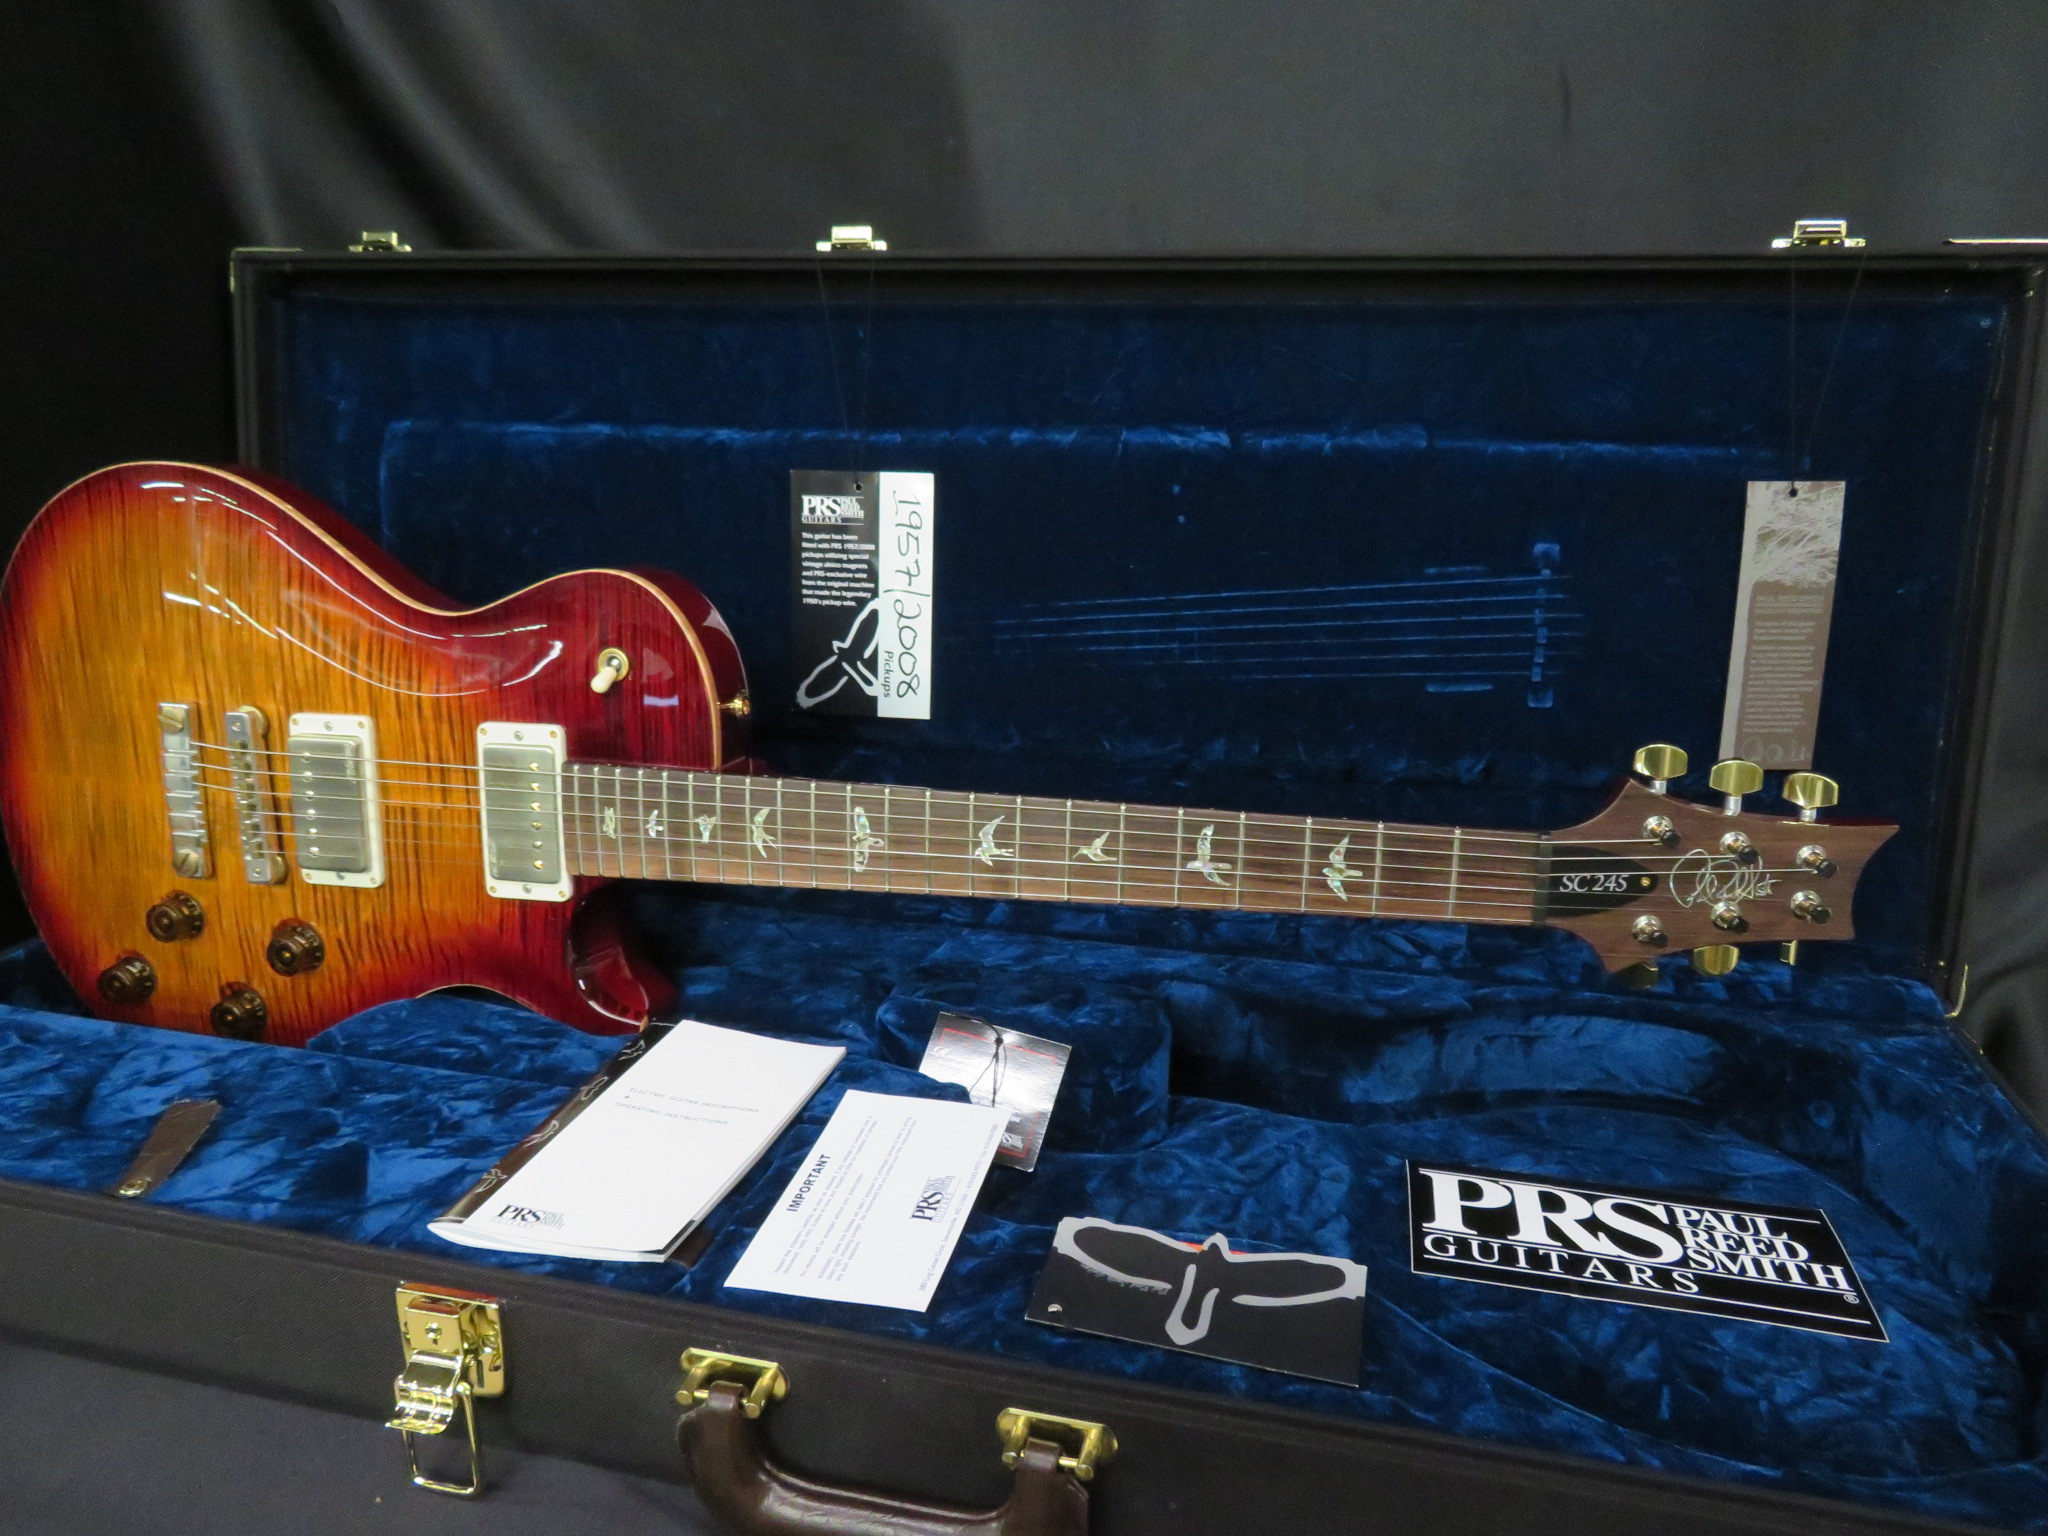 Paul Reed Smith - 2013 SC-245 Artist